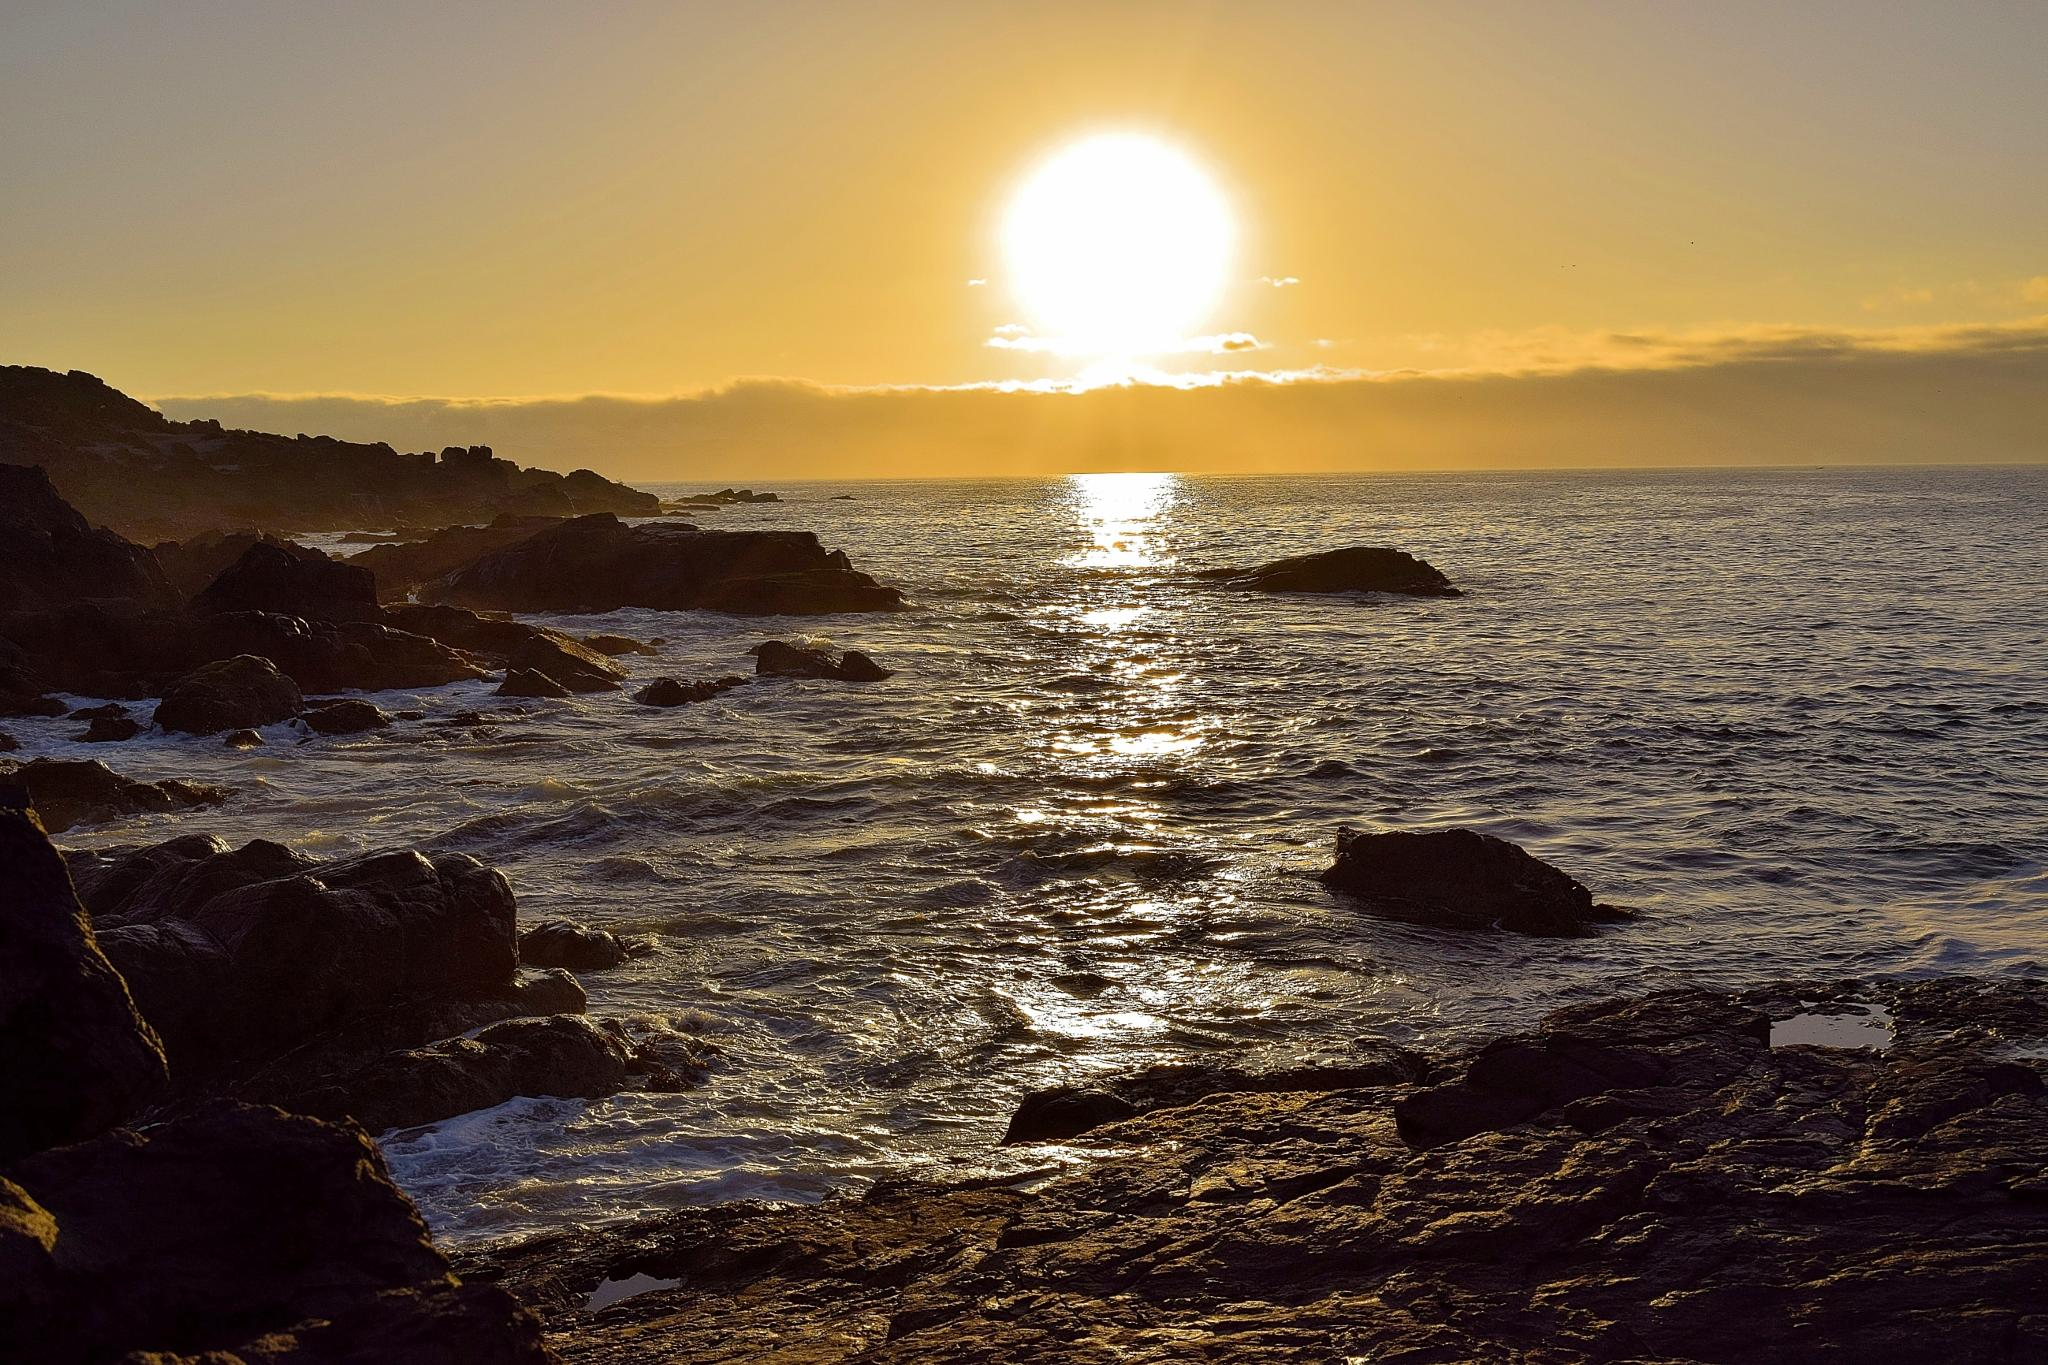 Sunset, Tongoy, Chile by milualin2006